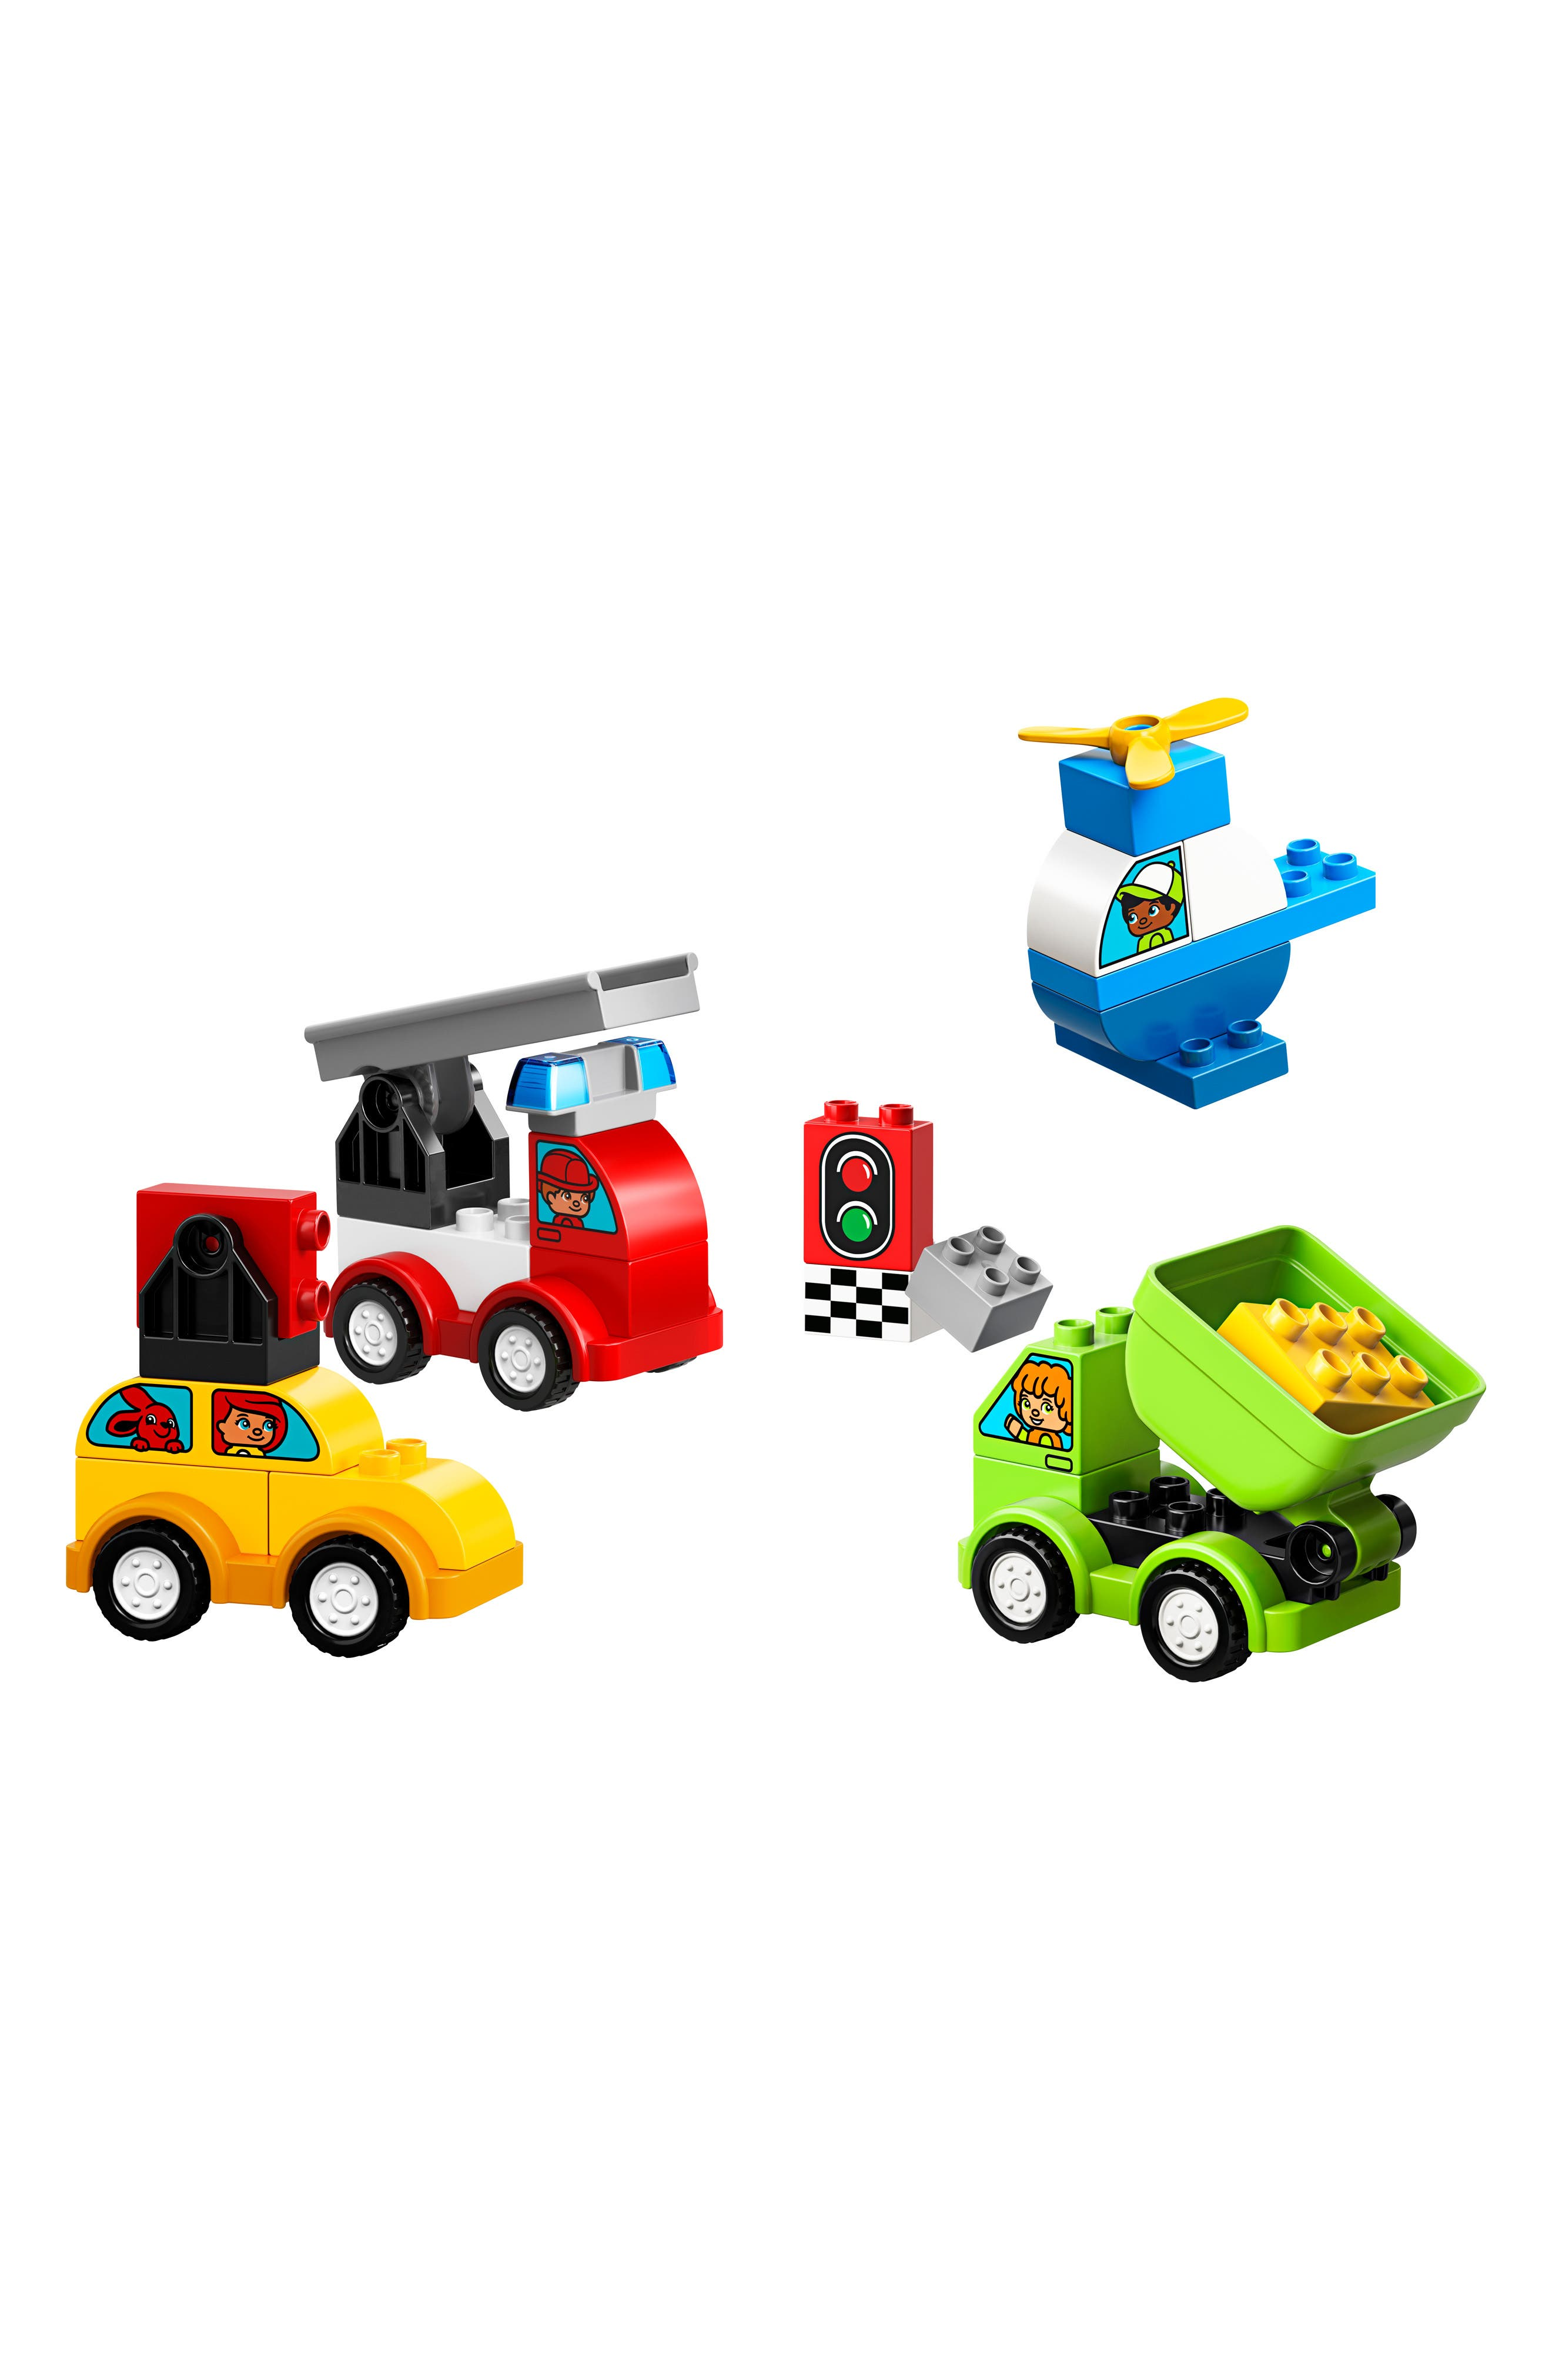 Toddler Boys Lego Duplo My First Car Creations  10886